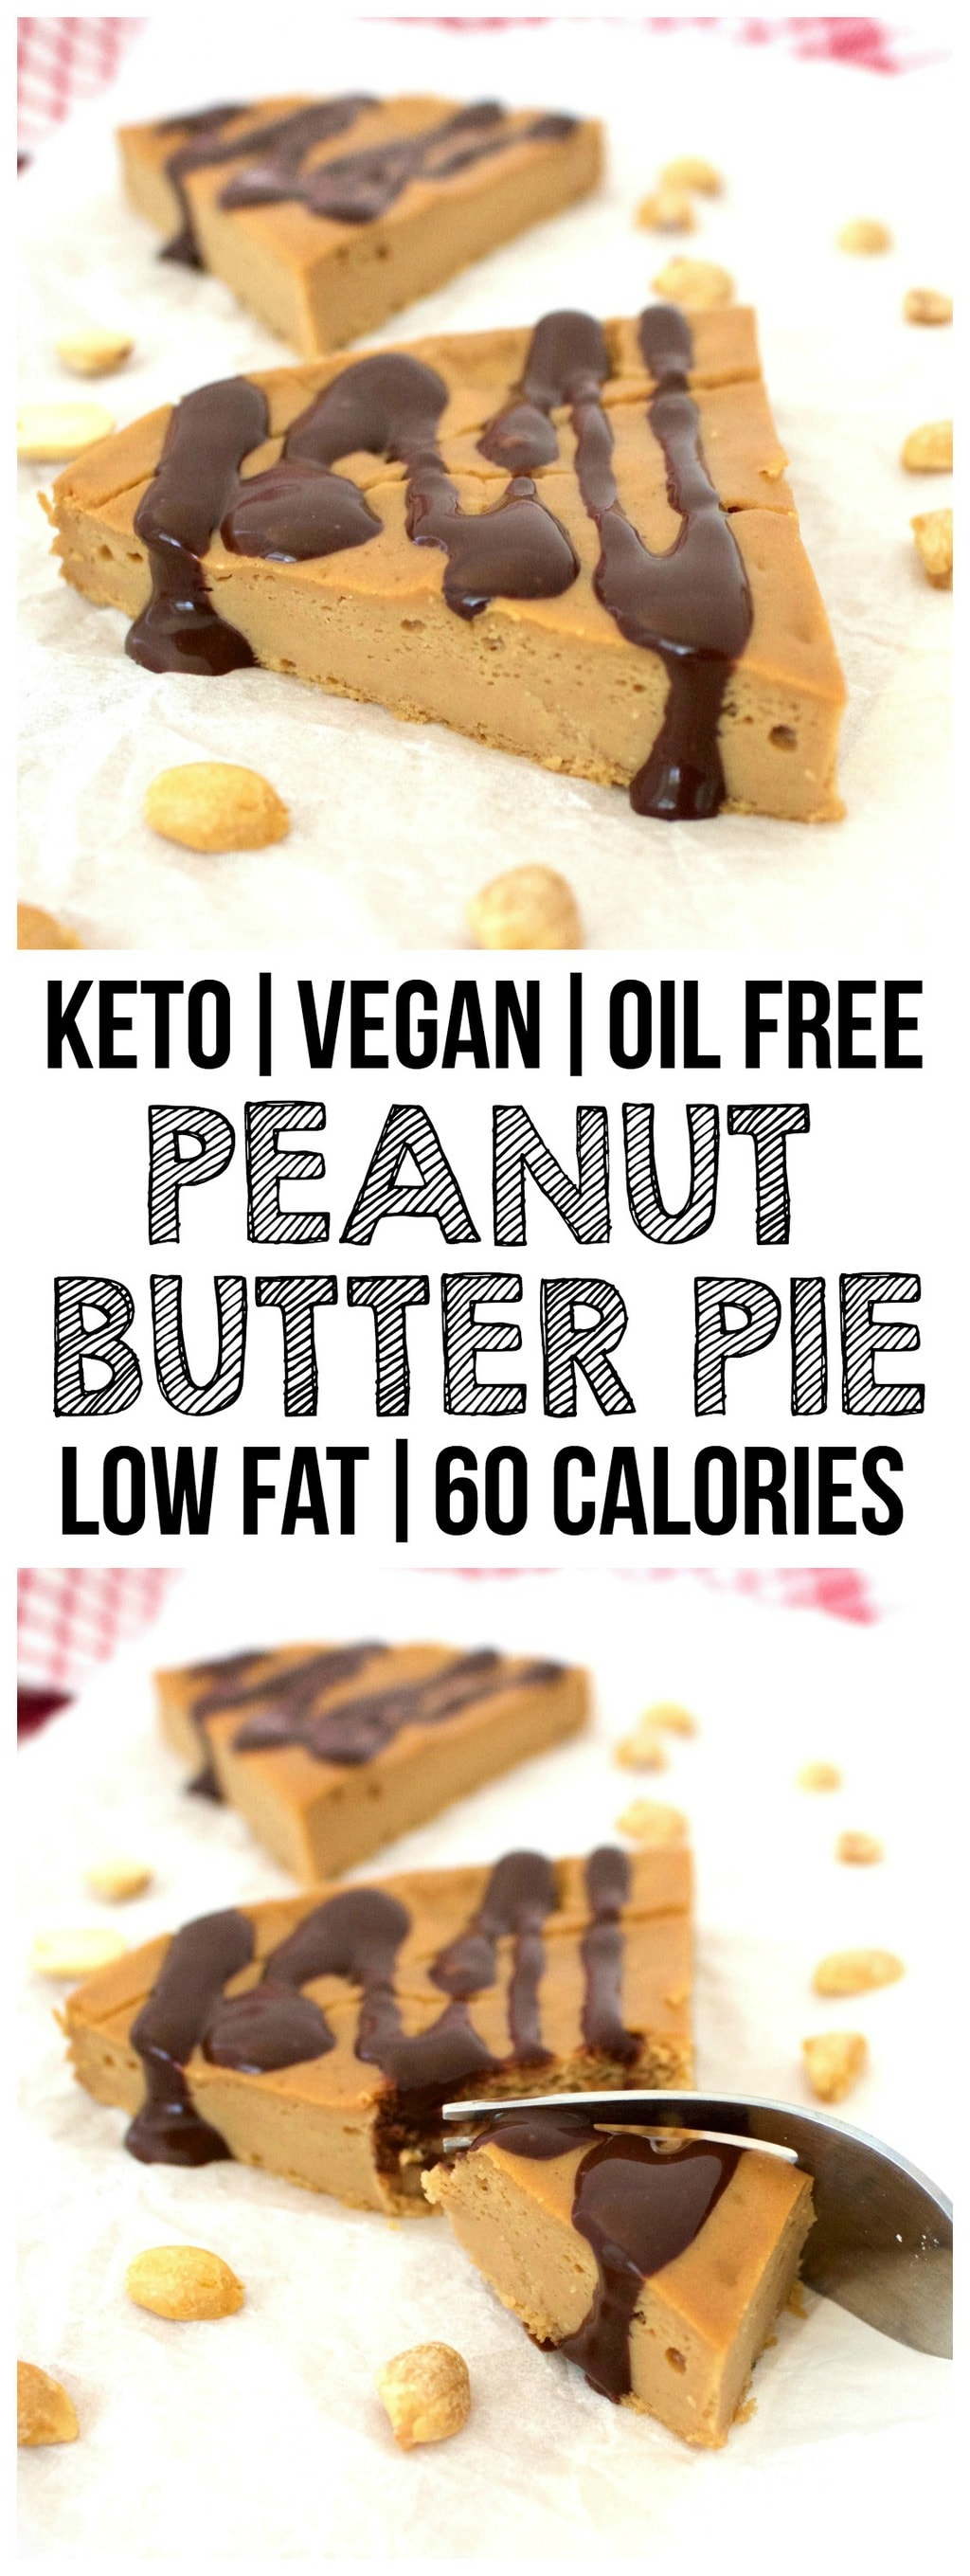 This Vegan Peanut Butter Pie is amazingly delicious! A perfectly rich and creamy texture with heavenly peanut butter flavor. It's also keto, gluten-free, oil-free, low-fat, dairy-free, low-carb, and sugar-free!